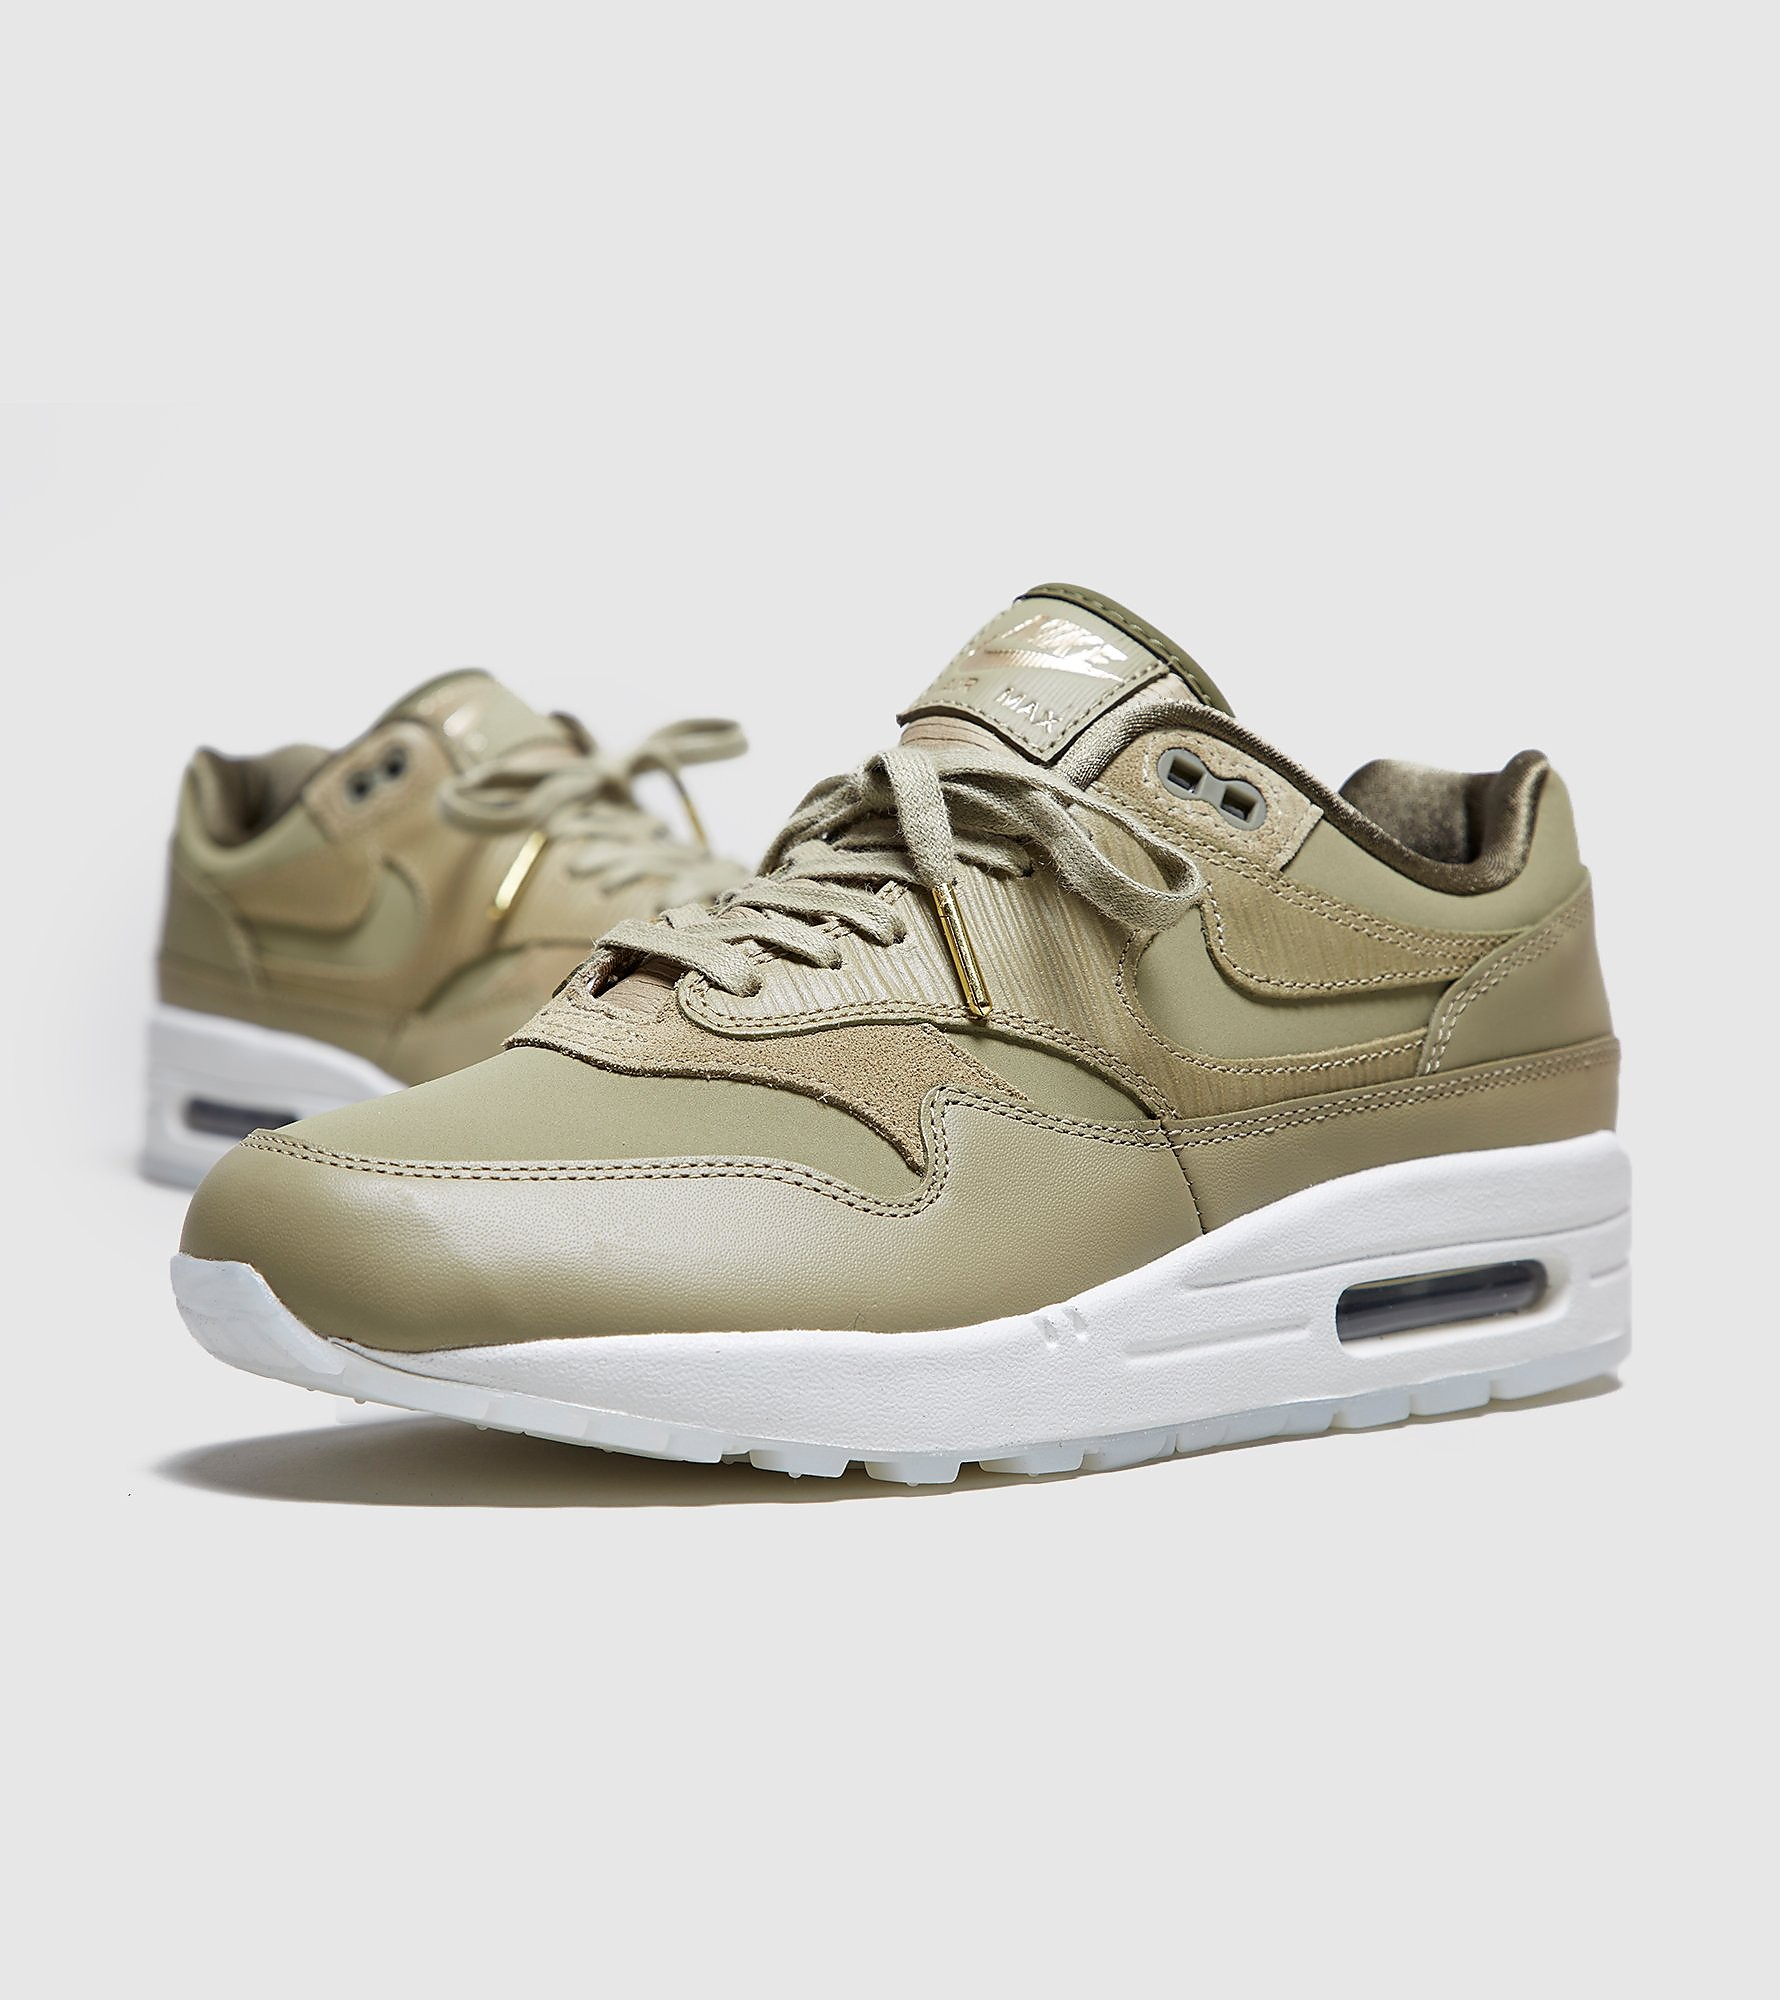 Nike Air Max 1 Premium Leather